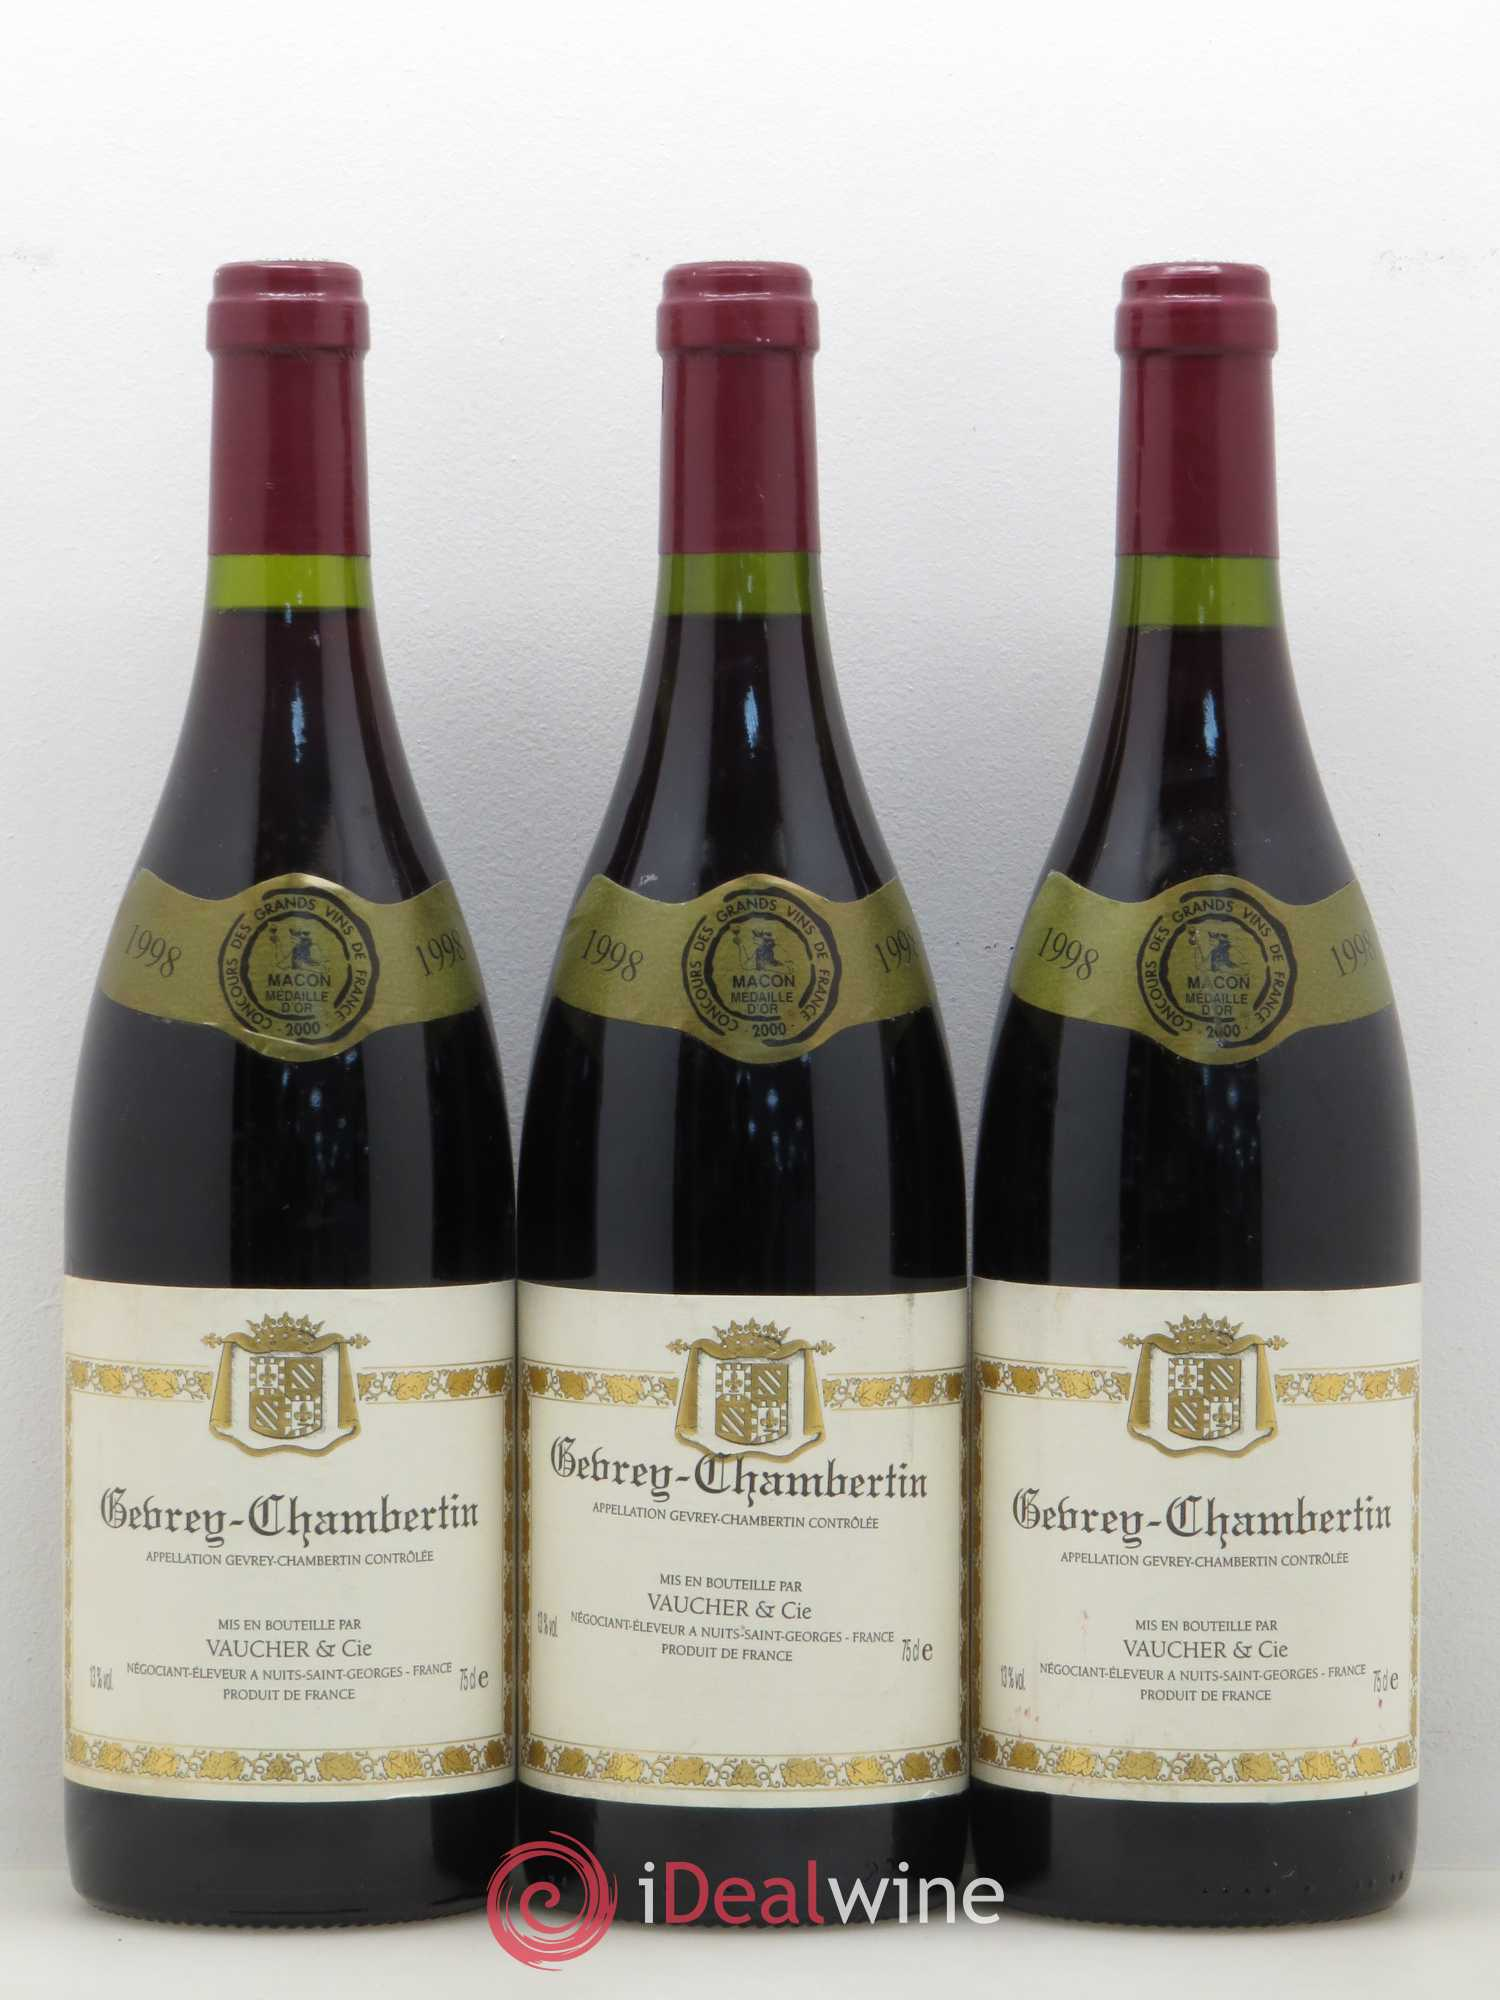 Gevrey-Chambertin Domaine Vaucher 1998 - Lot of 3 Bottles